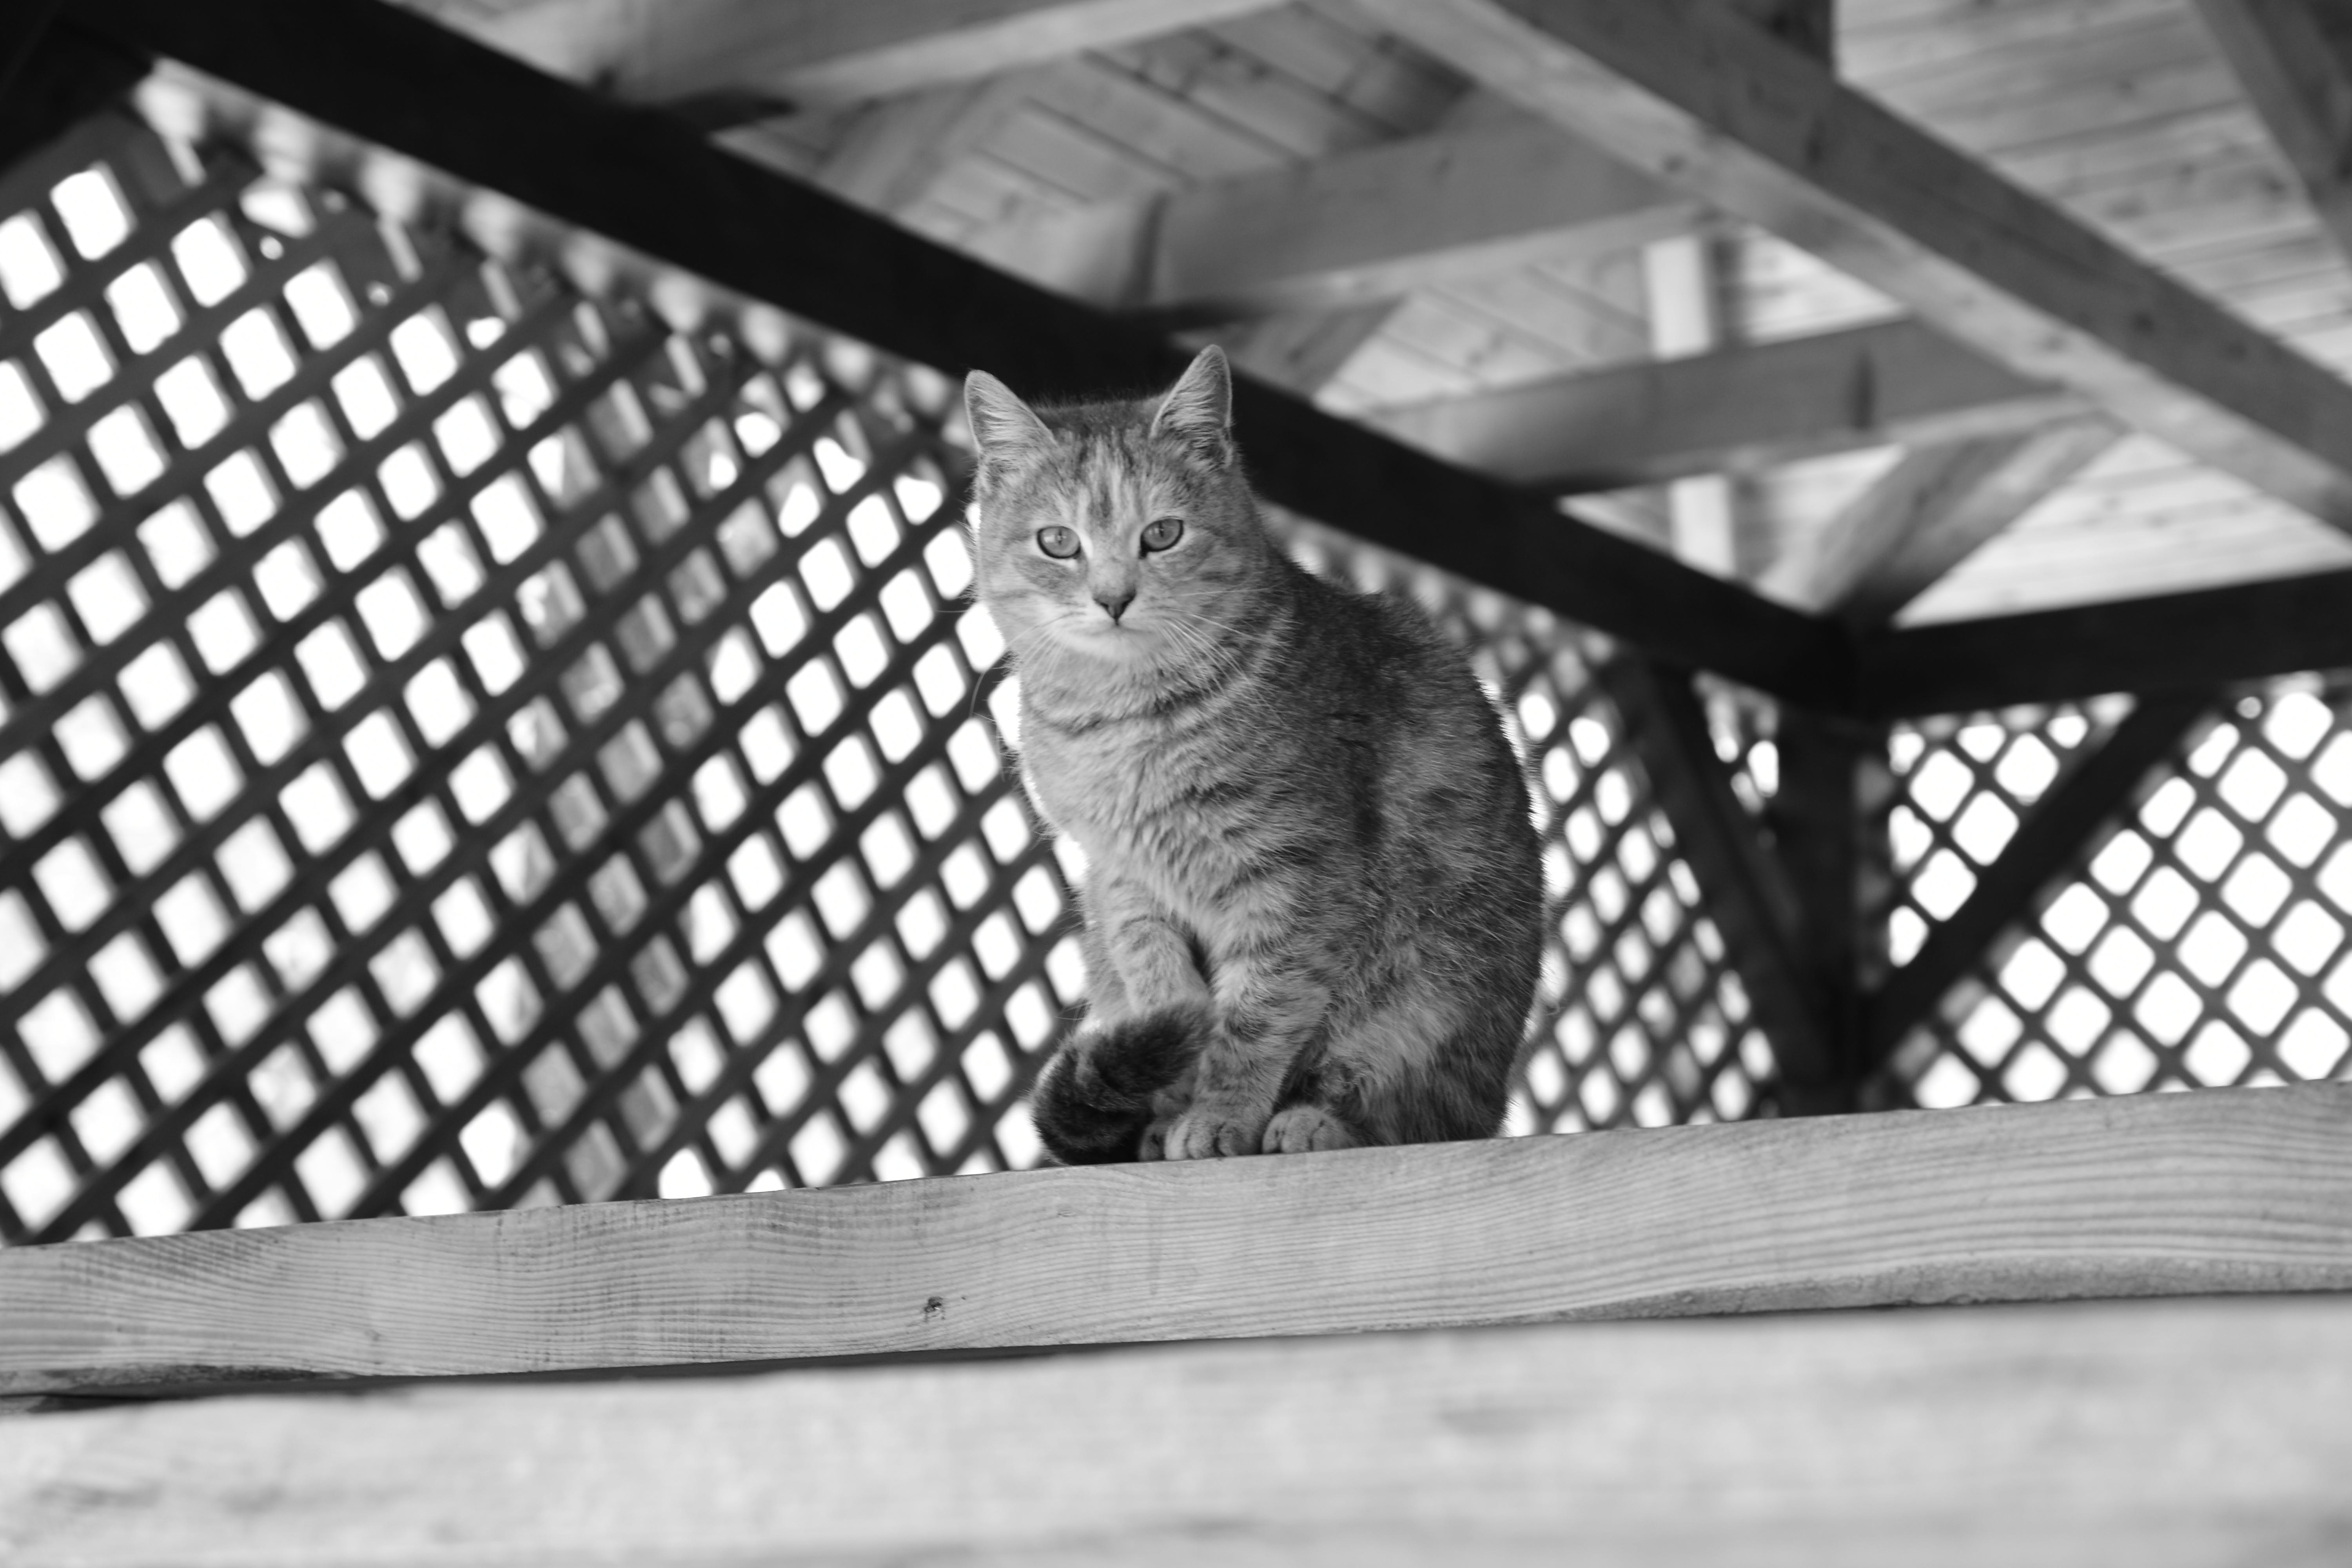 Grayscale Photography of Cat Sitting on Top of Wooden Panel